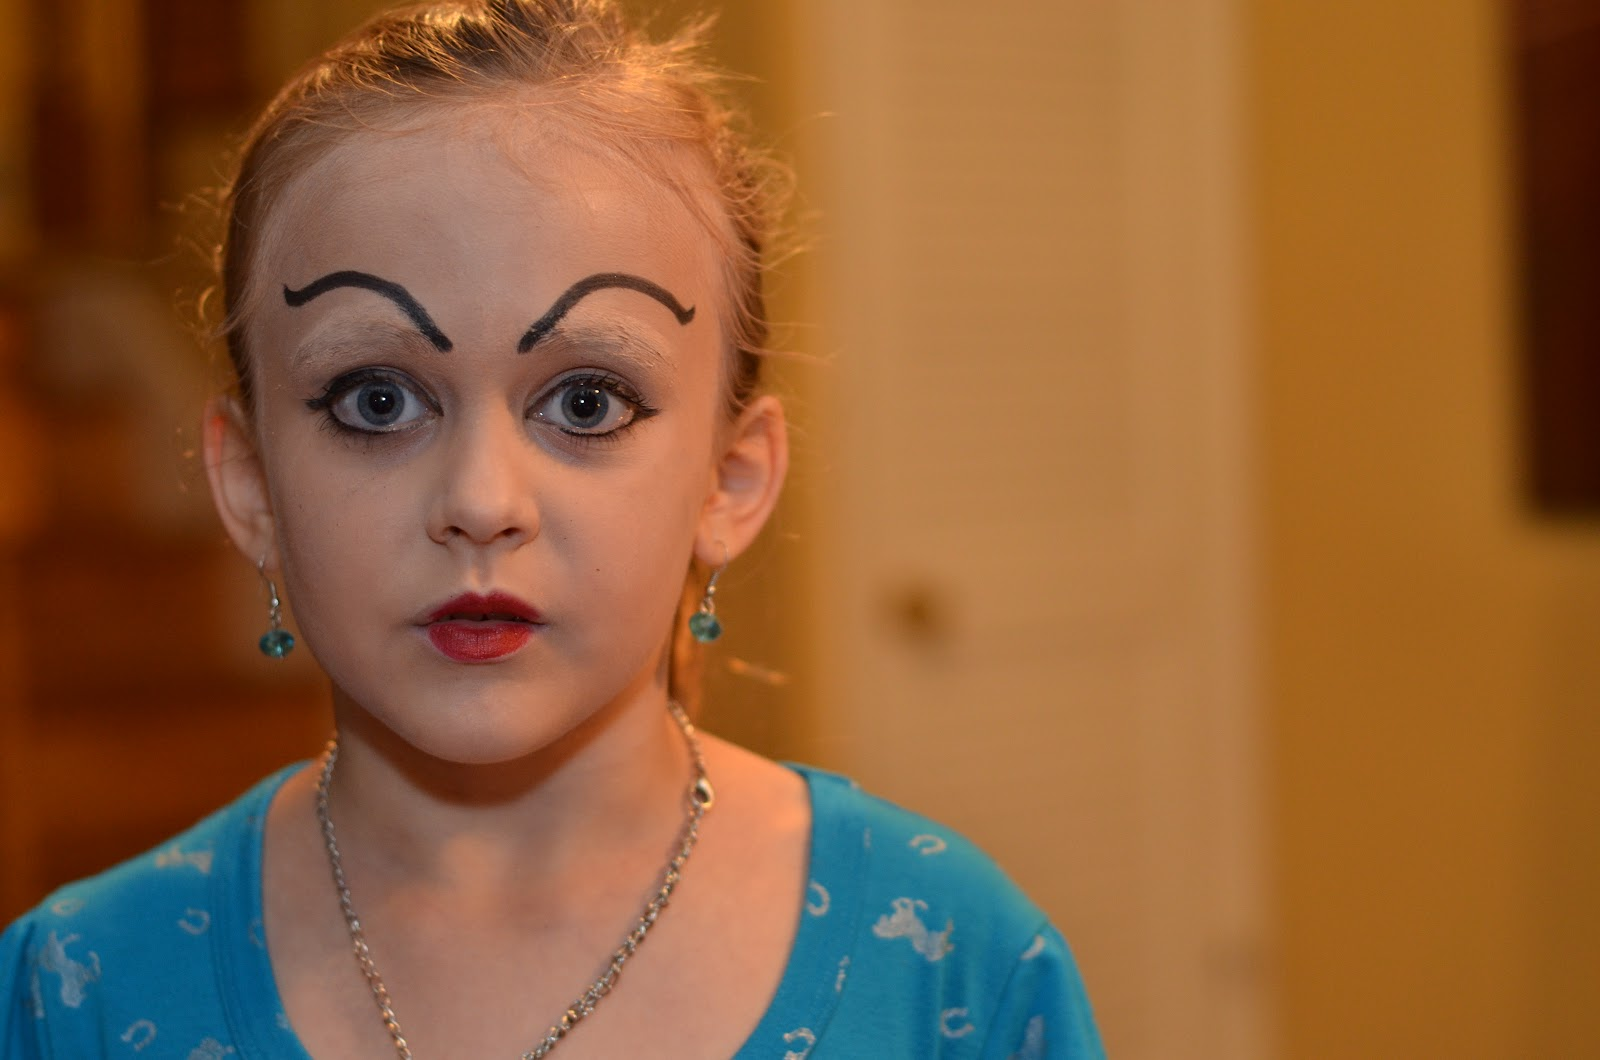 Pageants for Little Girls Wearing Too Much Makeup - Bing ...